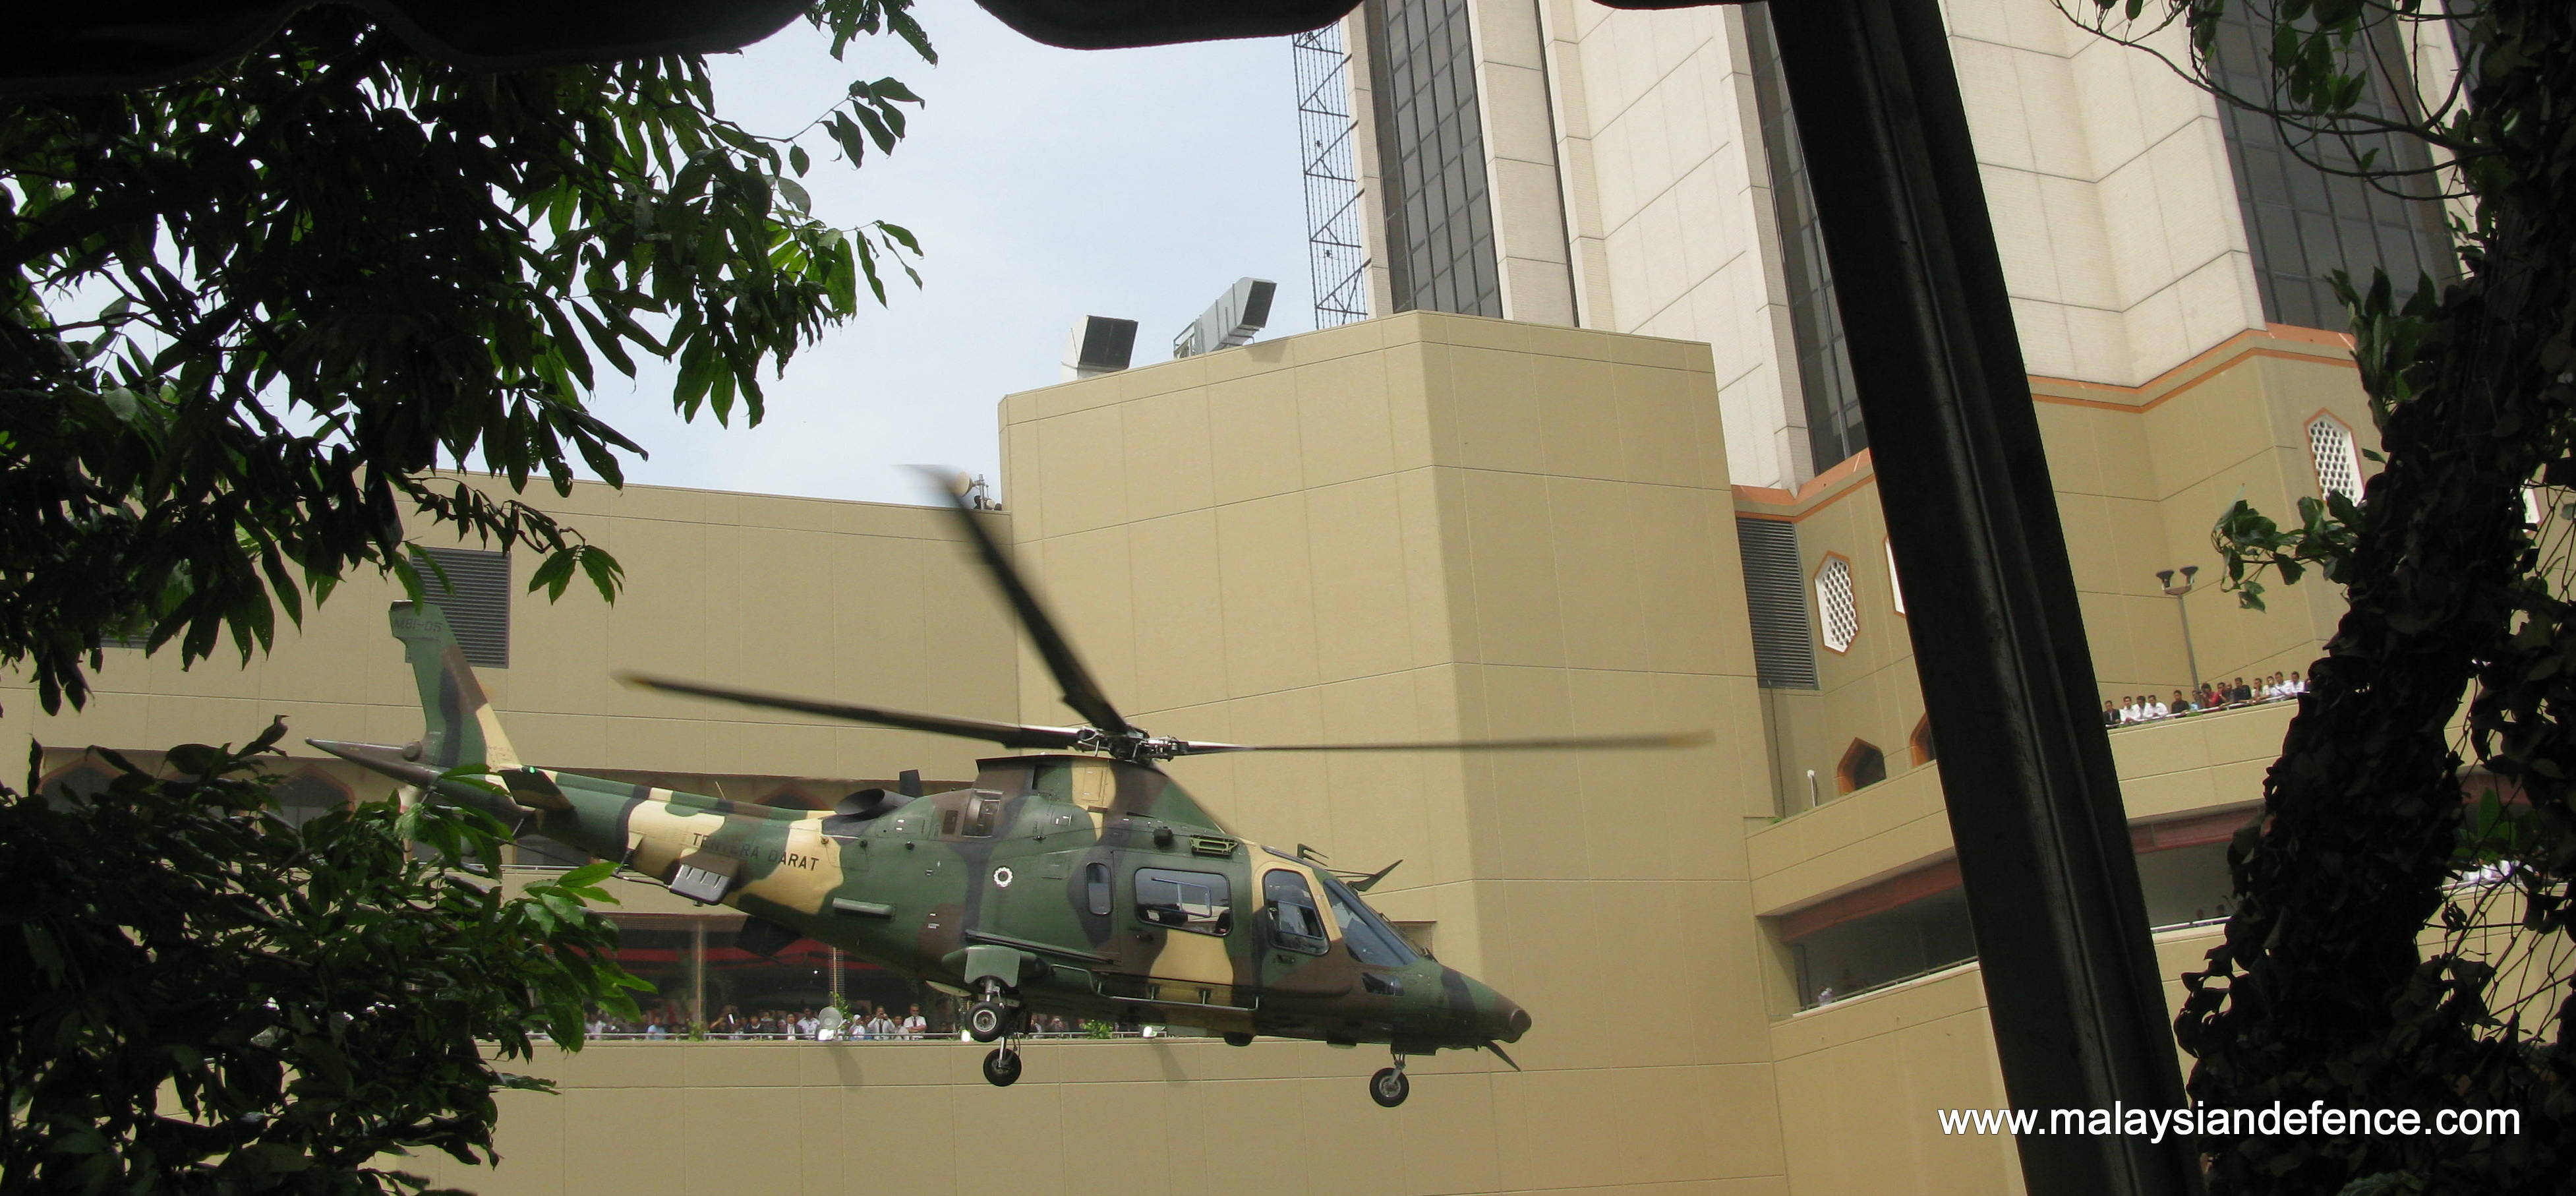 Army's A109 LOH taking part in the hostage rescue demonstration conducted by the GGK in conjunction of DSA 2012